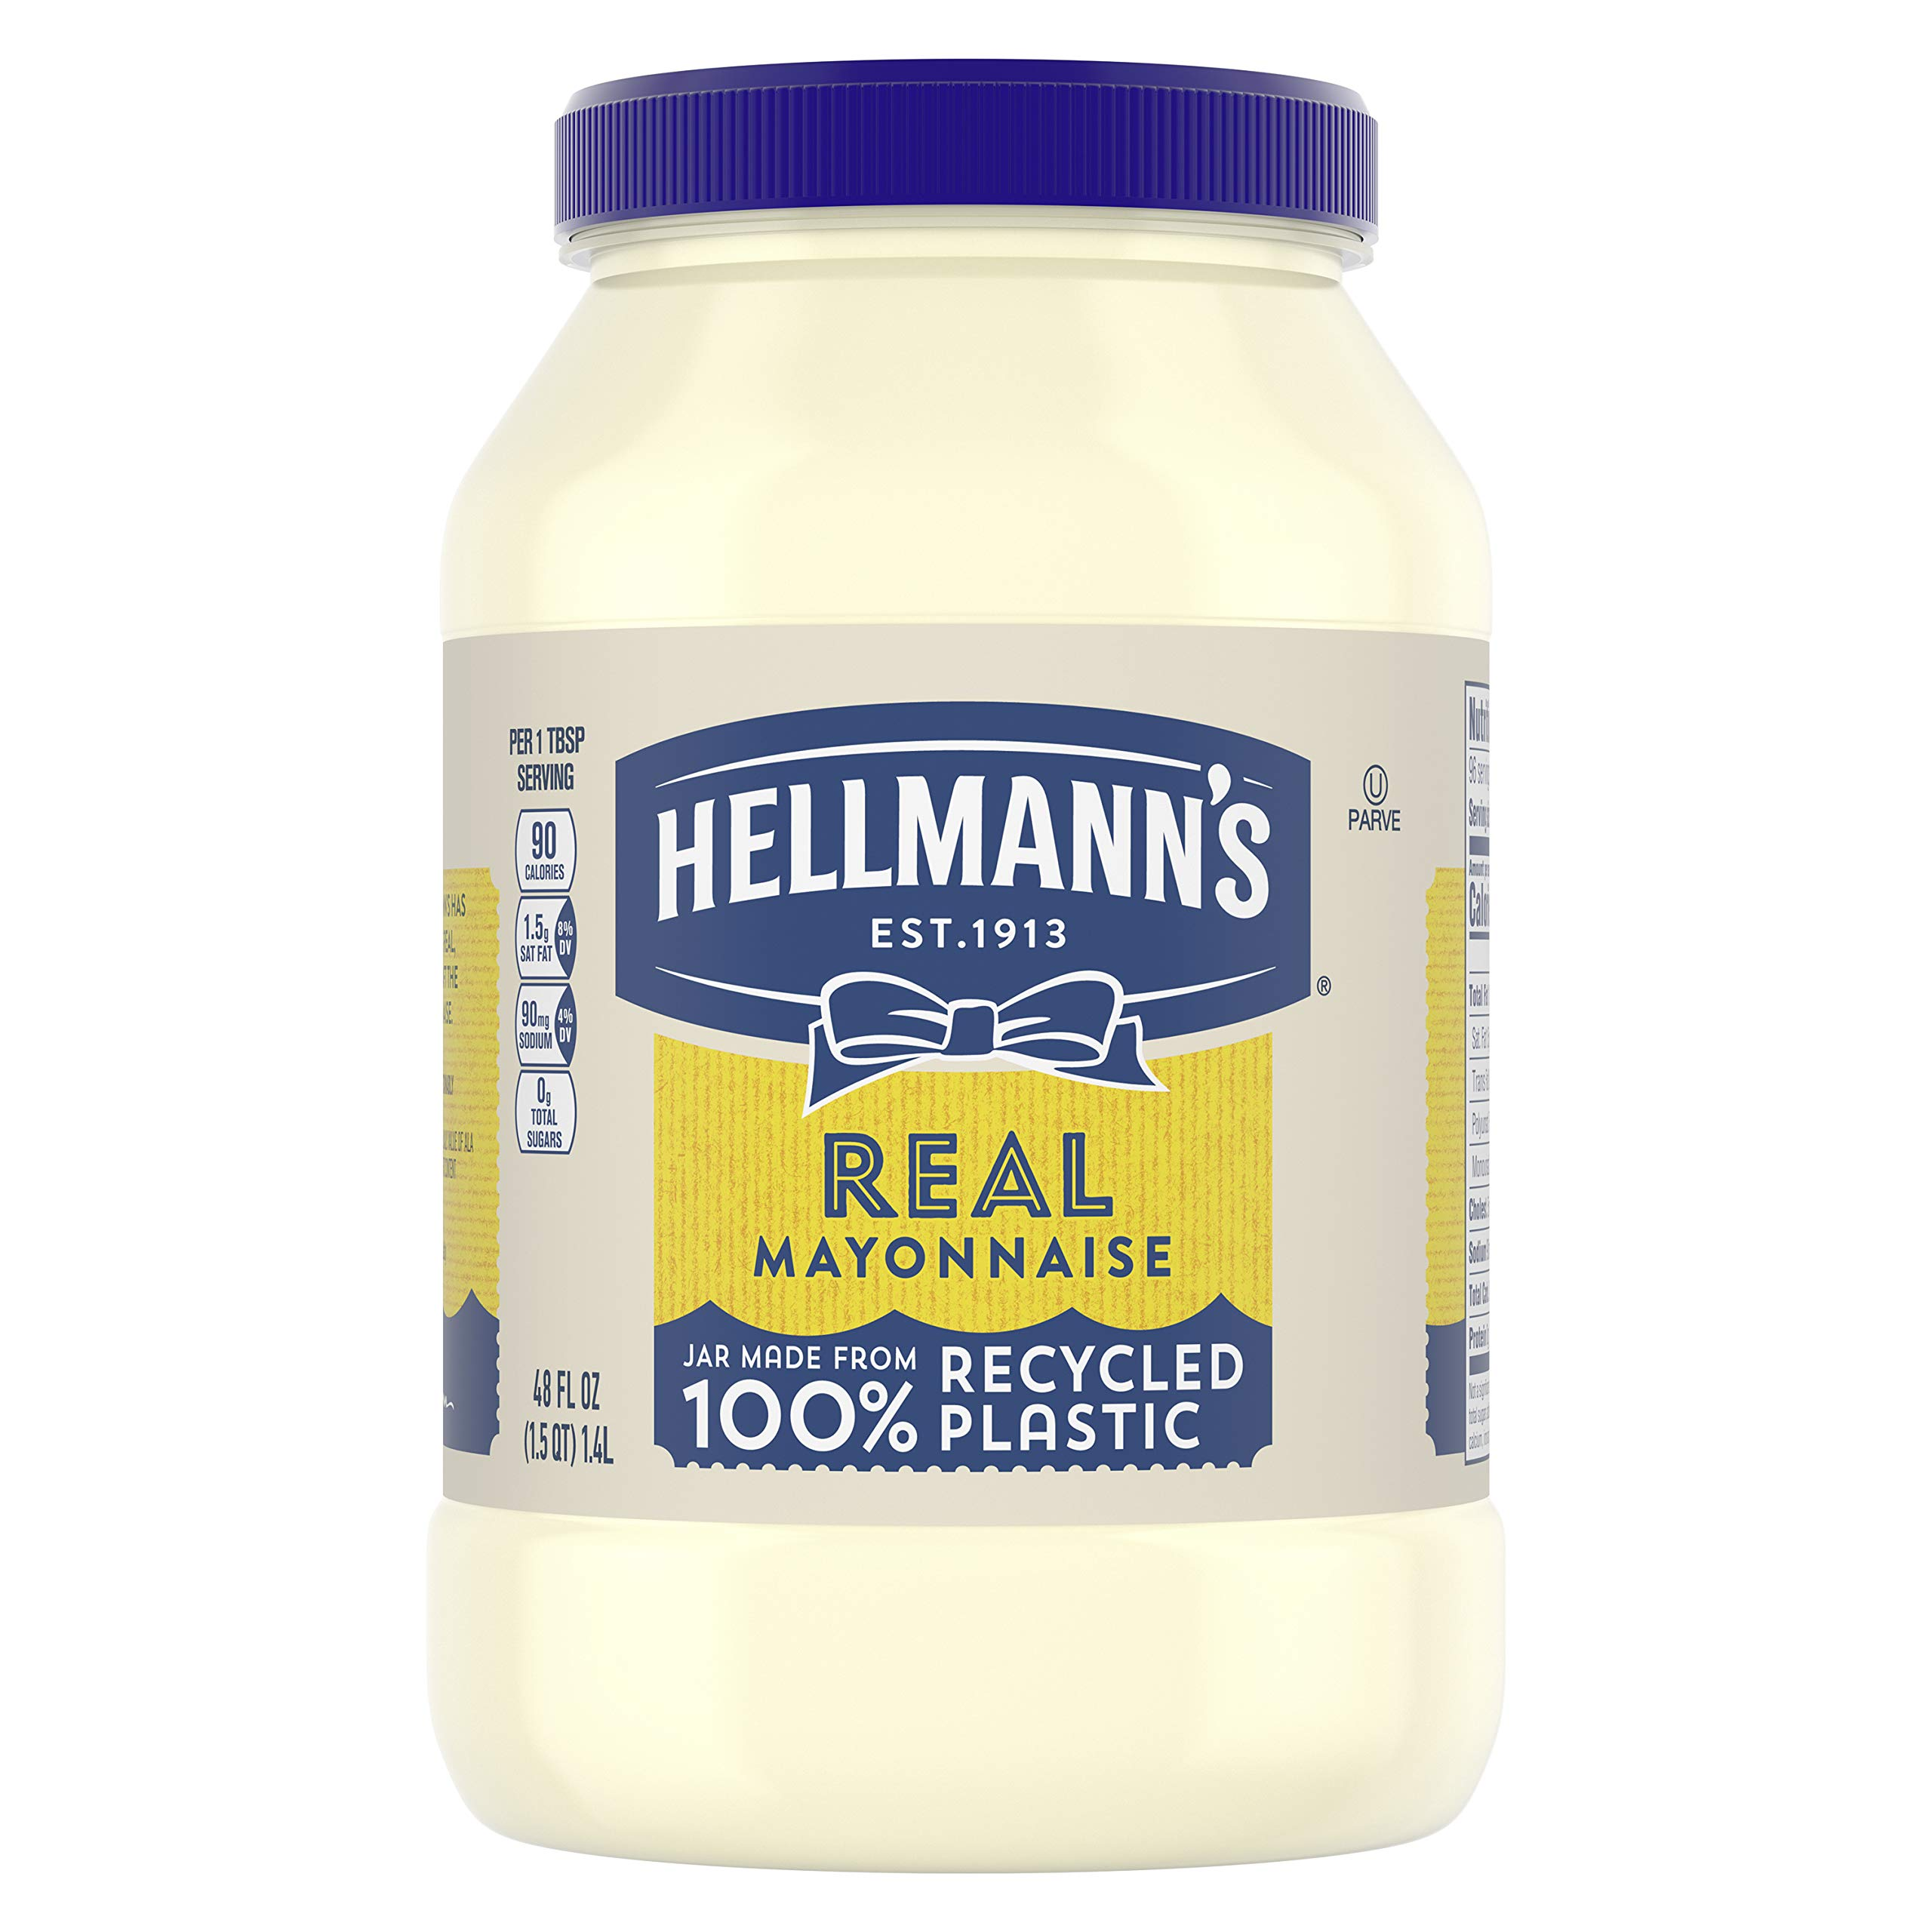 Hellmann's Real Mayonnaise For a Creamy Condiment Real Mayo Gluten Free, Made With 100% Cage-Free Eggs 48 oz